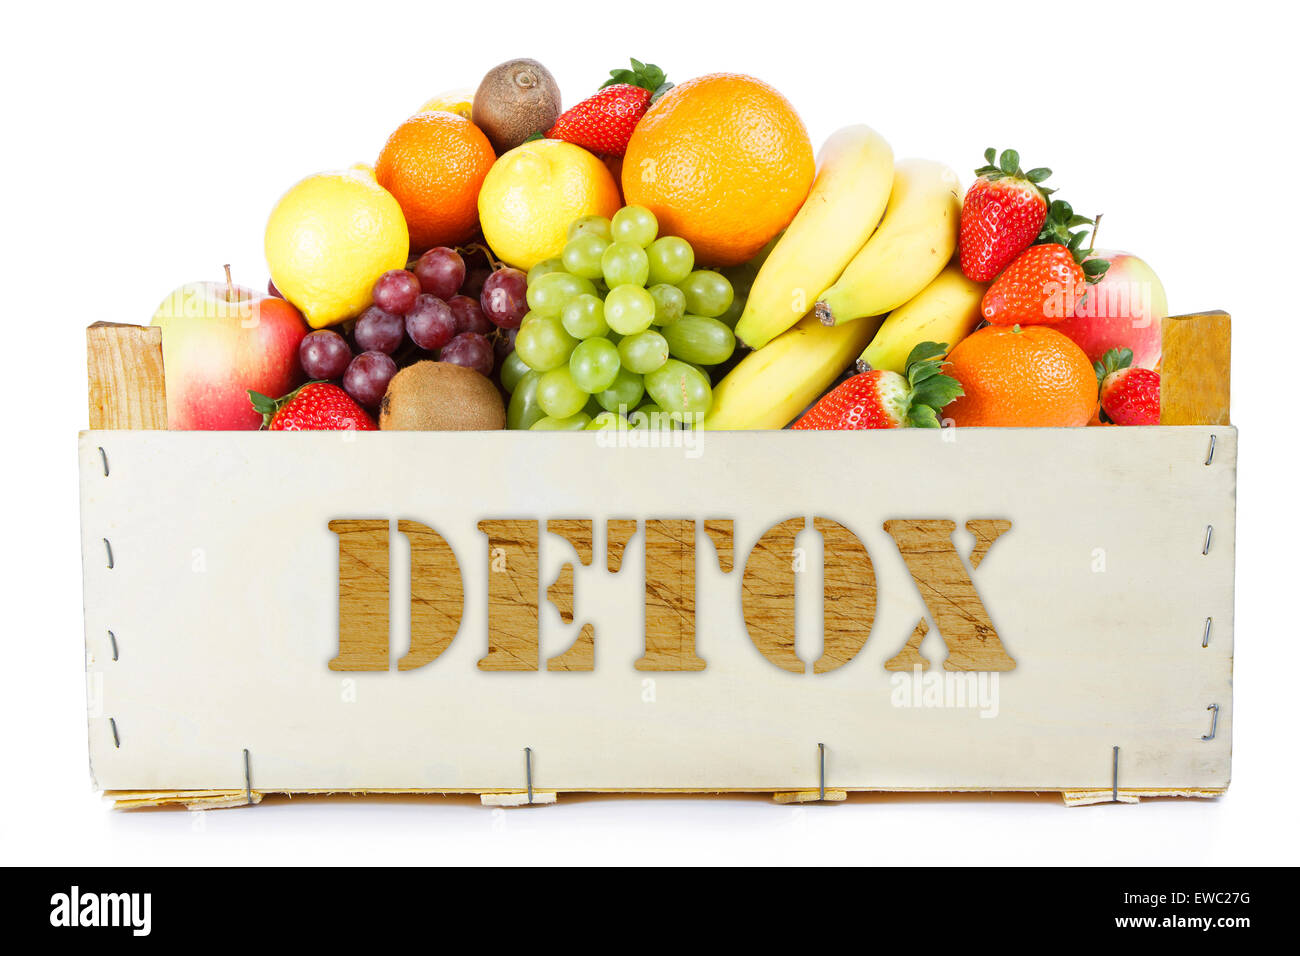 Detox. Fruits in wooden box - Stock Image